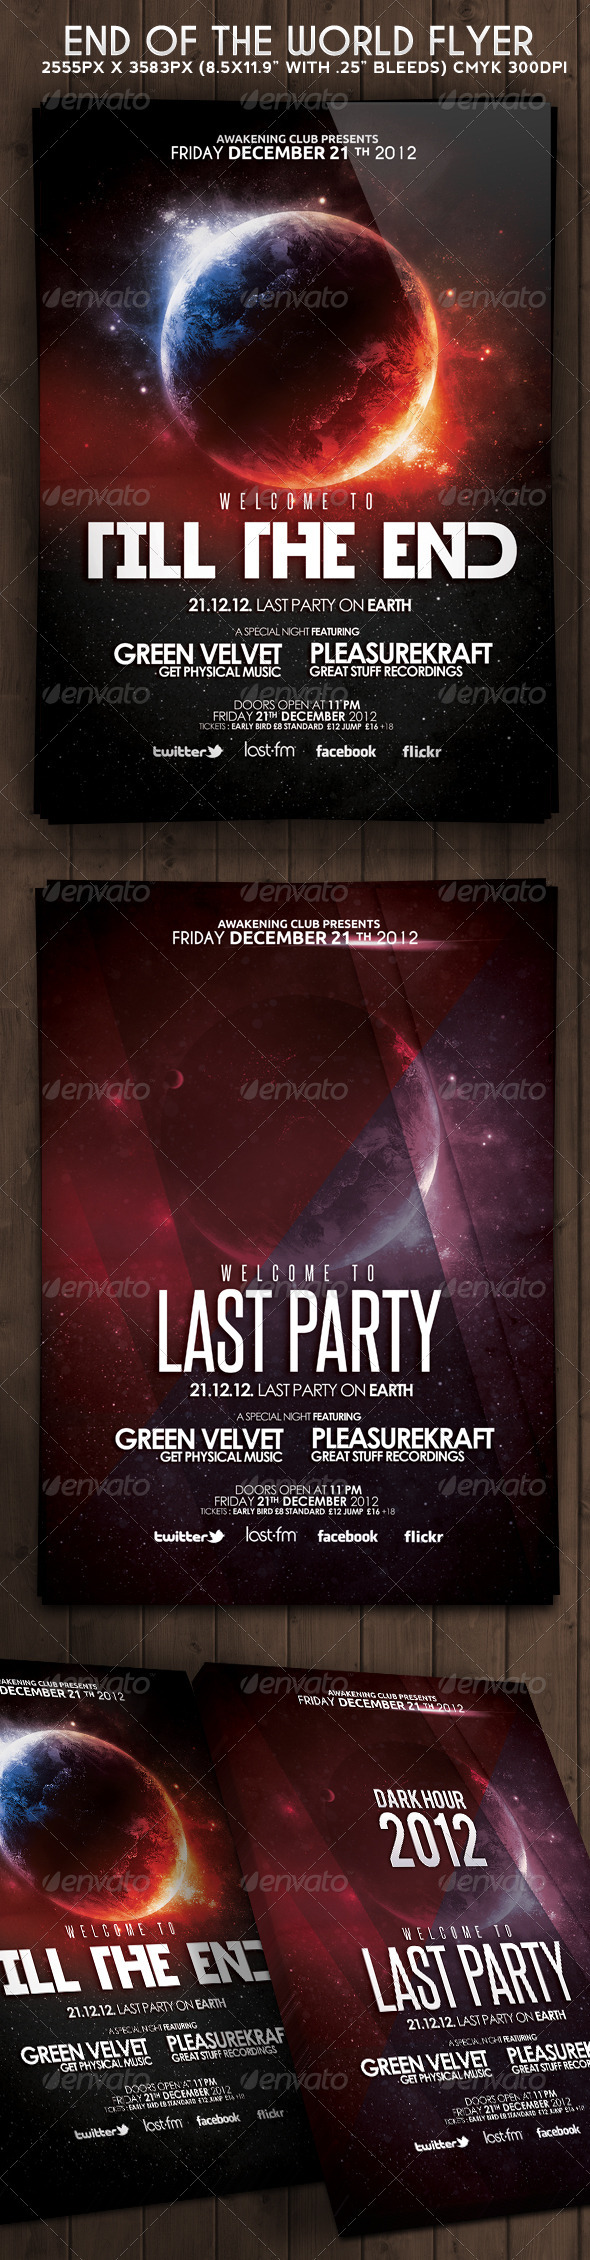 End Of The World Flyer - Clubs &amp; Parties Events